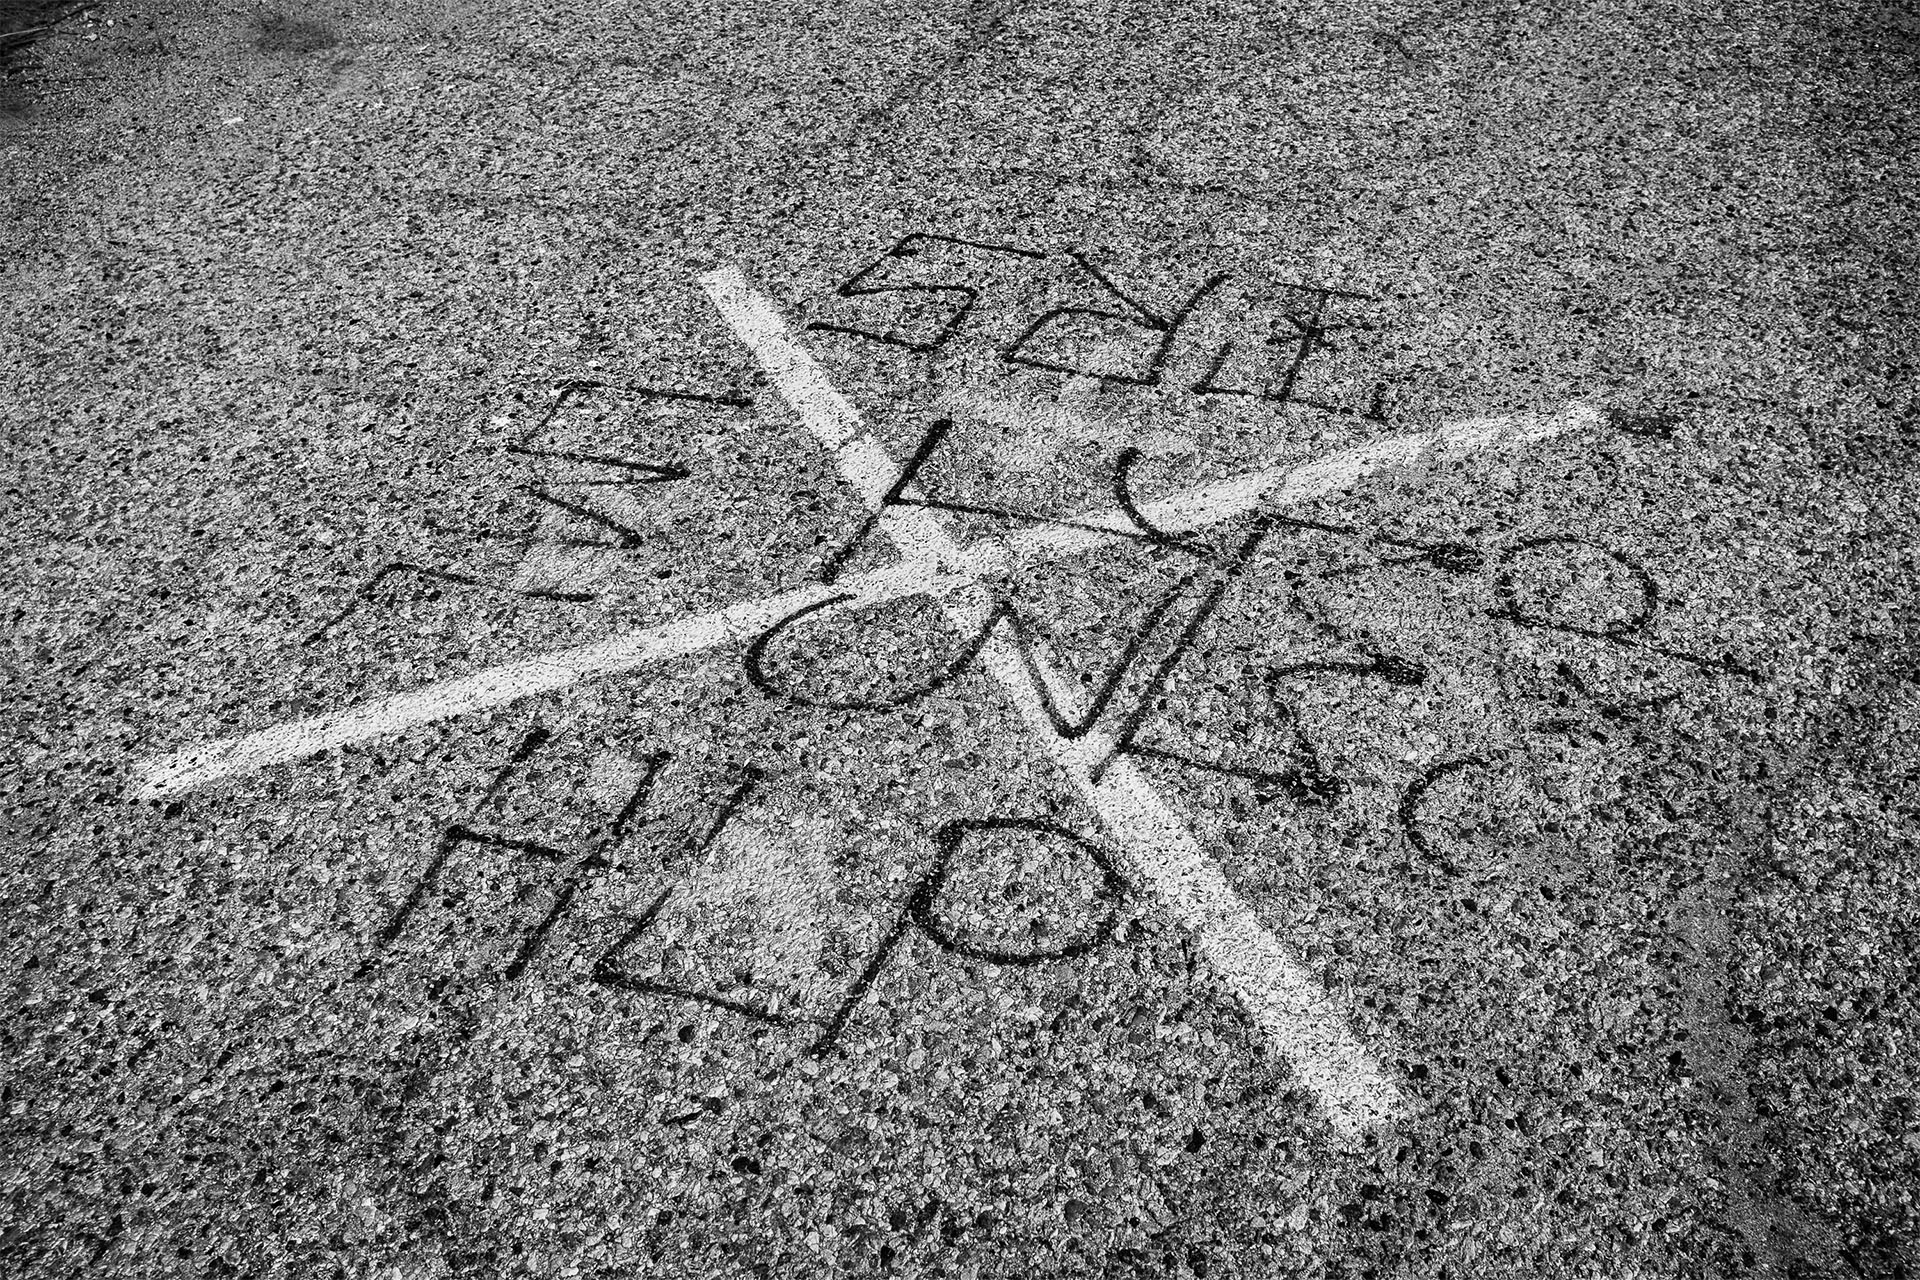 Tags on the ground at the Bowtie signify gang-related activity in the area | Photo by Bear Guerra